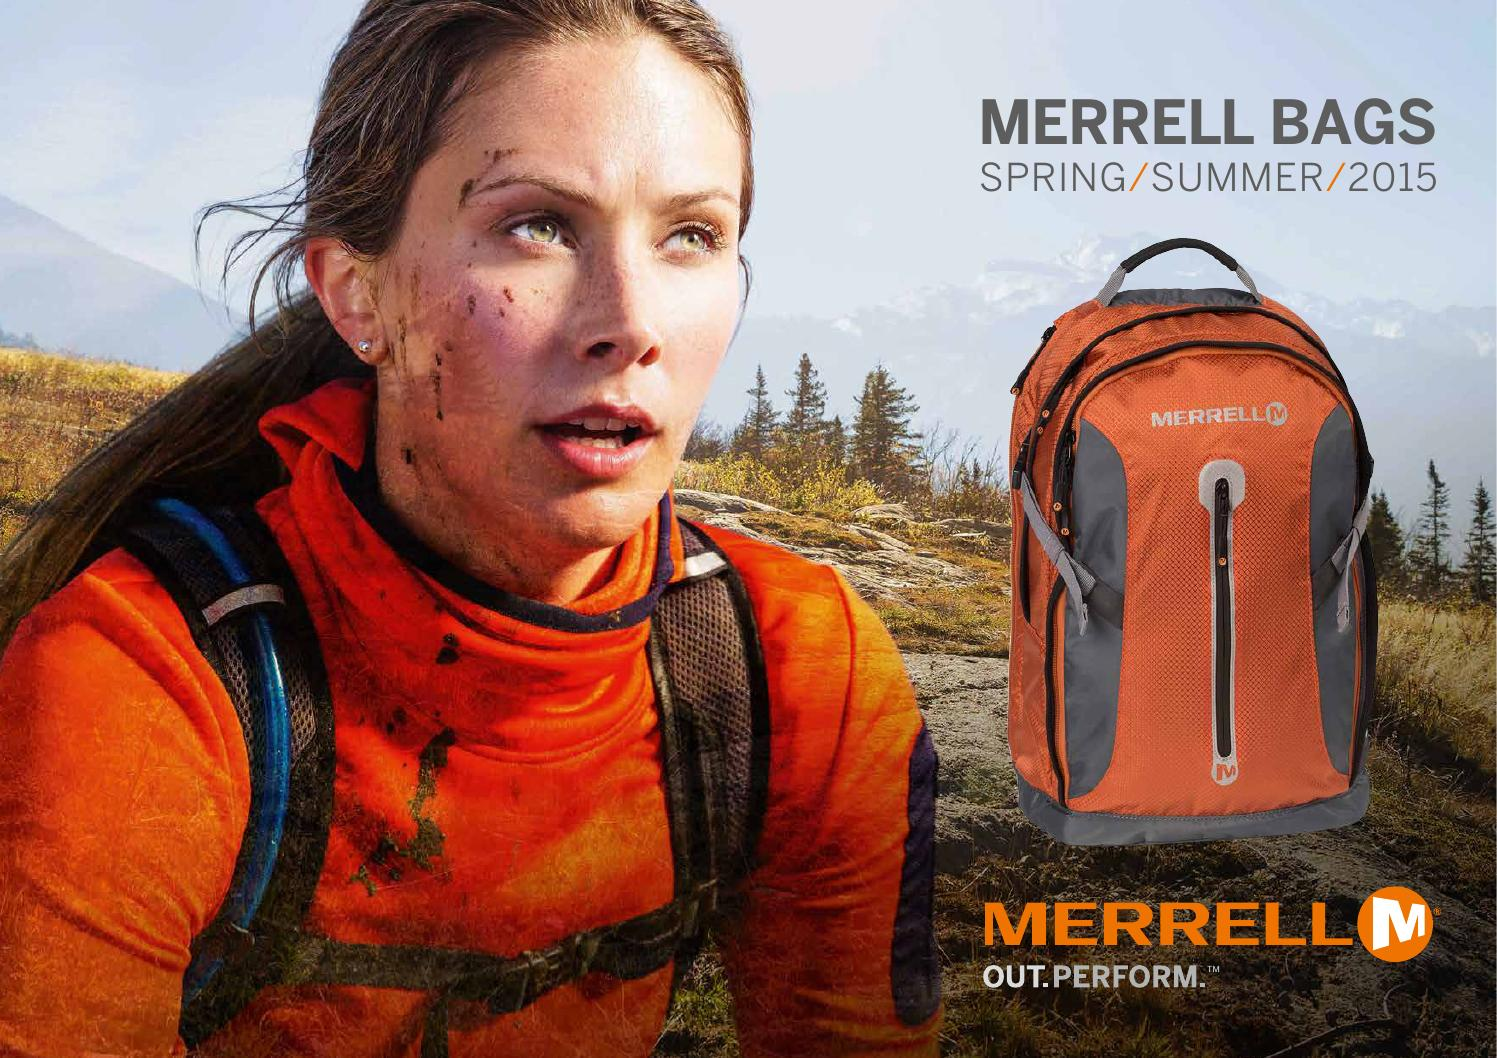 81b2ce5e49 Merrell bags - spring/summer 2015 collections by Grown Up Licenses - issuu